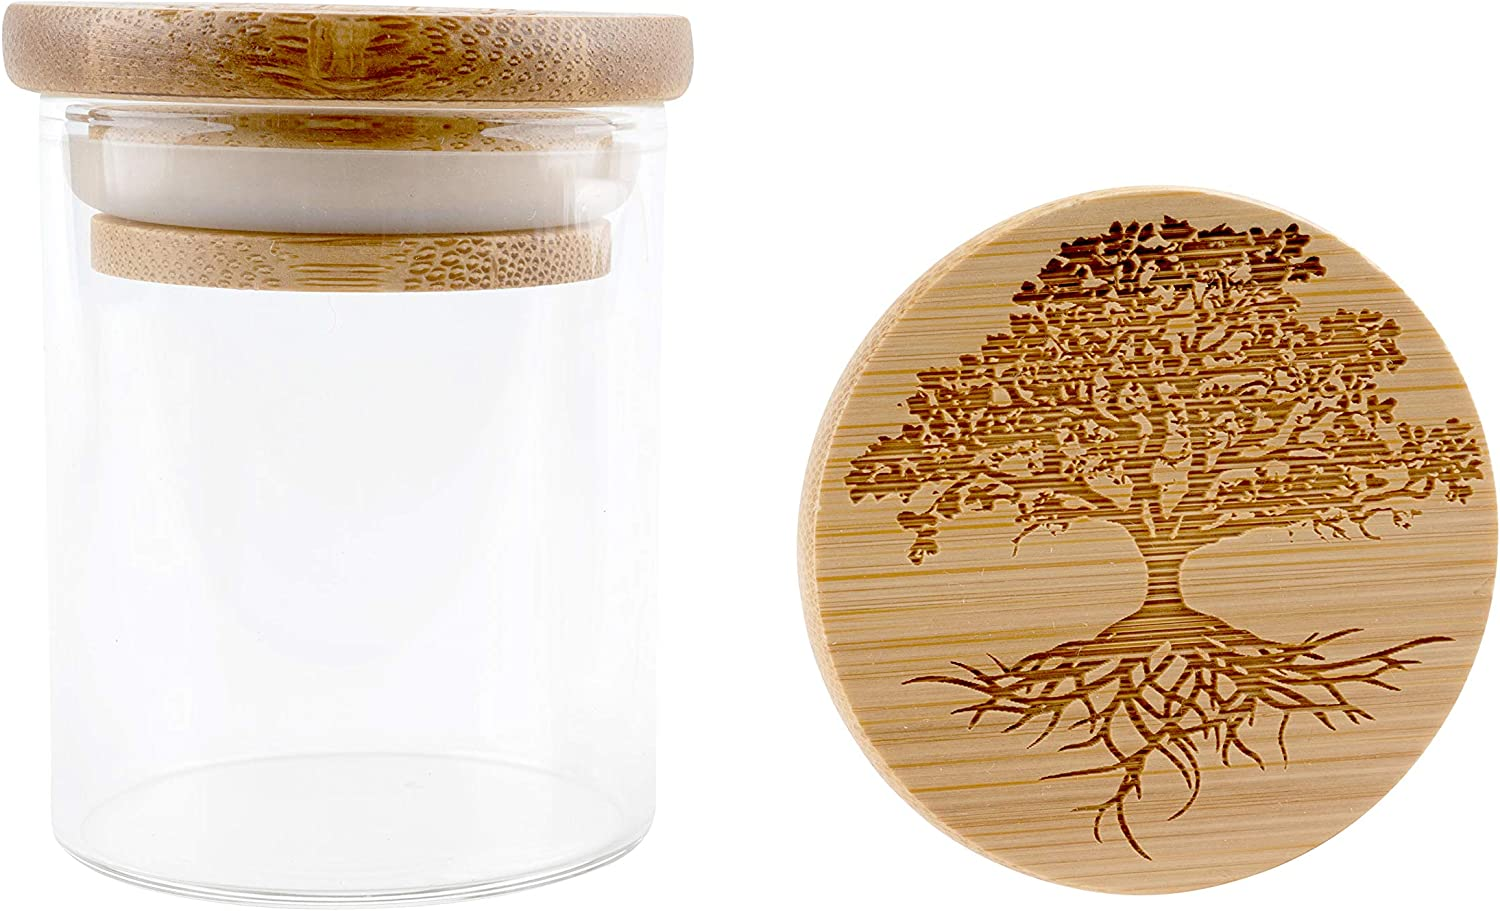 Hakuna Supply - Glass Storage Jar with Decorative Airtight Bamboo Lid - Multi-Use Stash Container for Herbs, Tea, Candy, Q-Tips, etc. for The Bedroom, Kitchen, and Bathroom (1/8 Oz., Tree of Life)